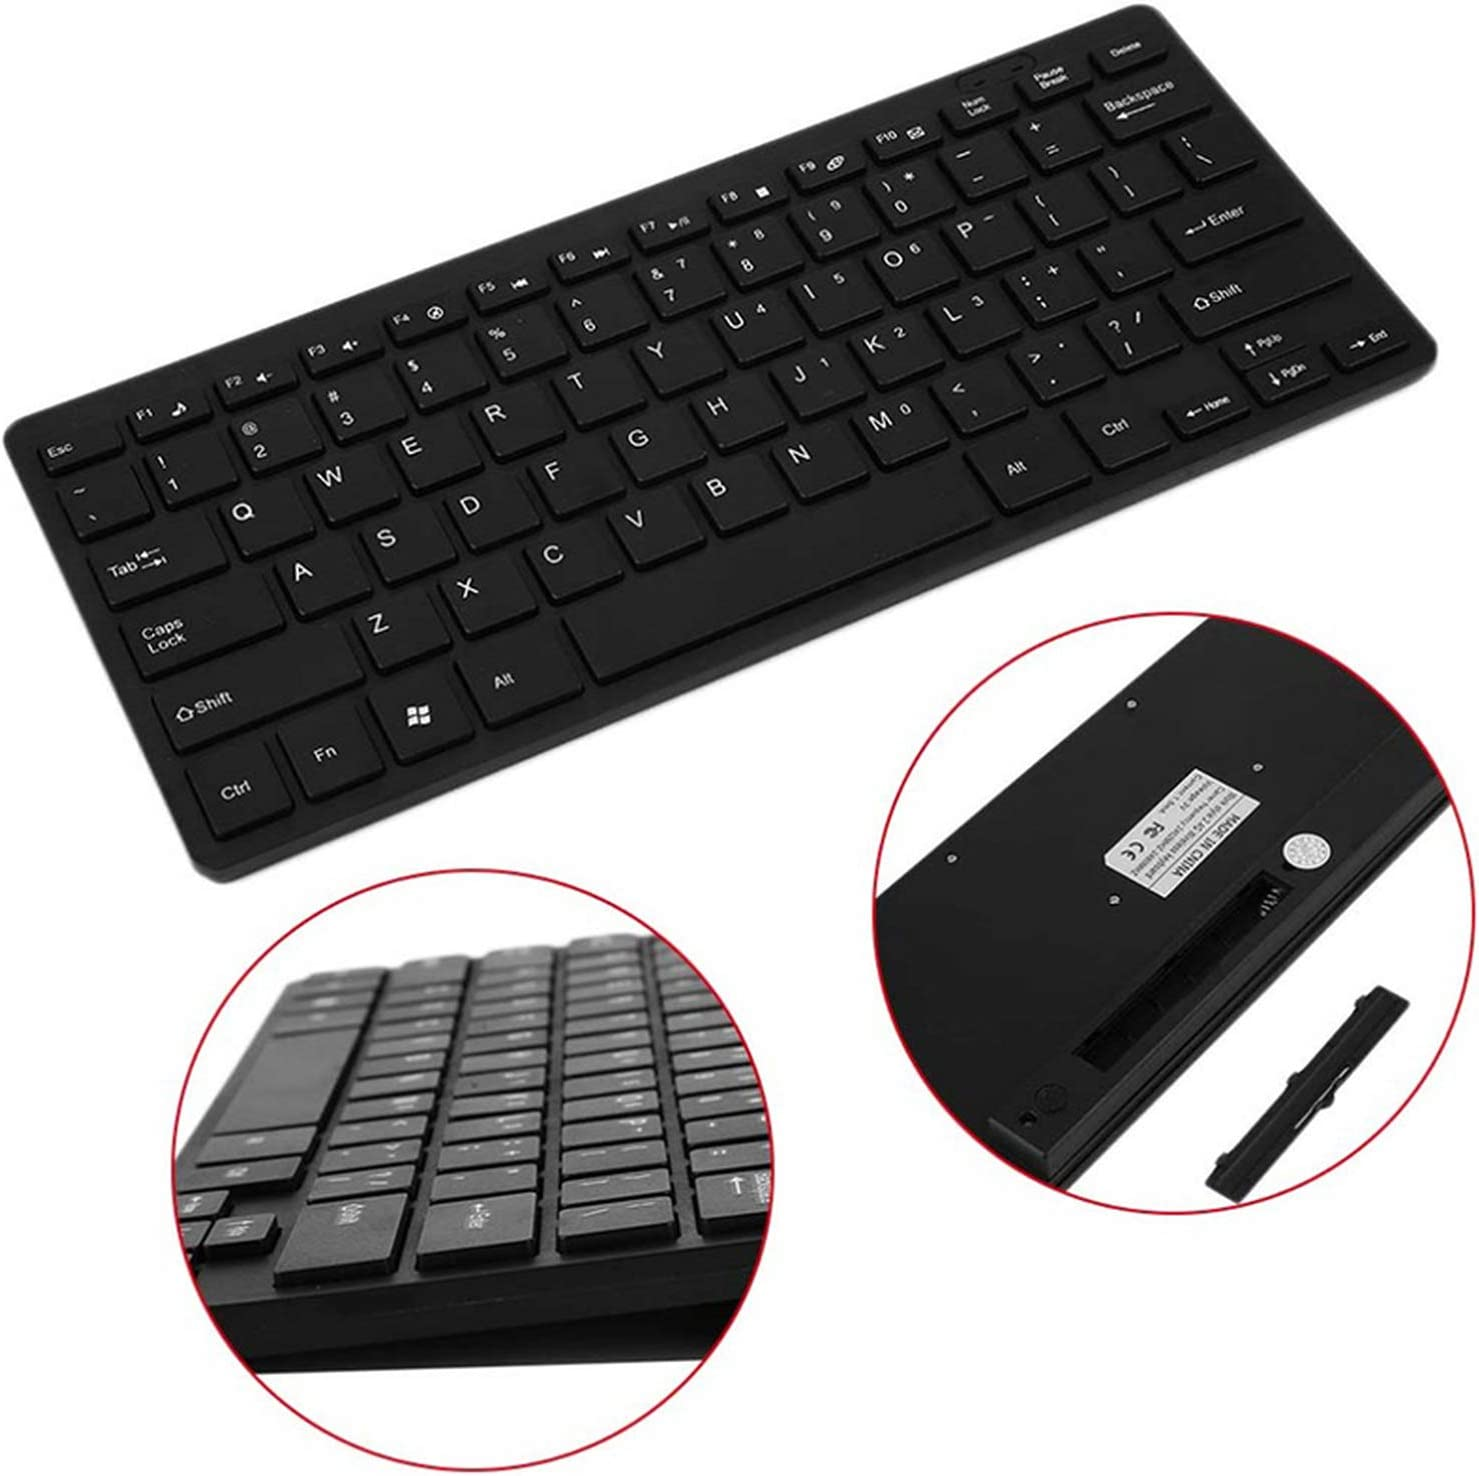 Mini Keyboard Mouse Combo Multimedia Wireless 2.4G Wireless Keyboard and Mouse Kit Keypad Slim for Android iOS Pc Laptop,Black